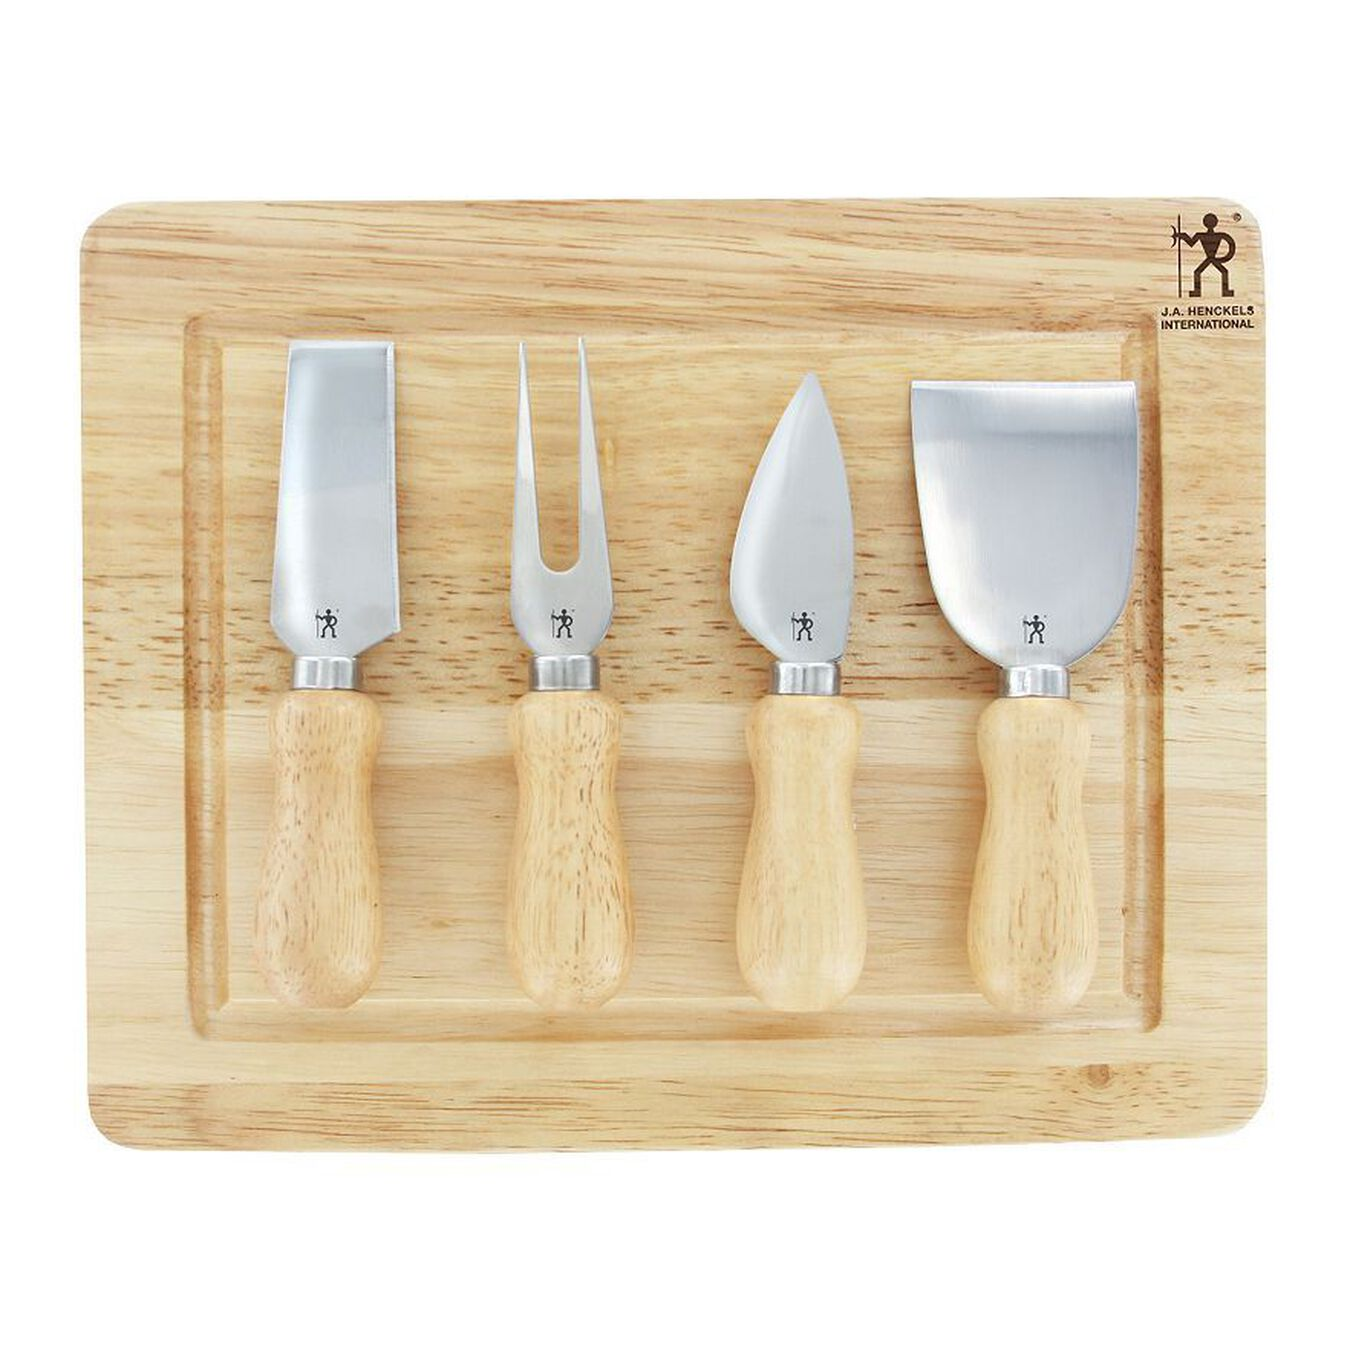 5-pc Cheese Knife Set,,large 1